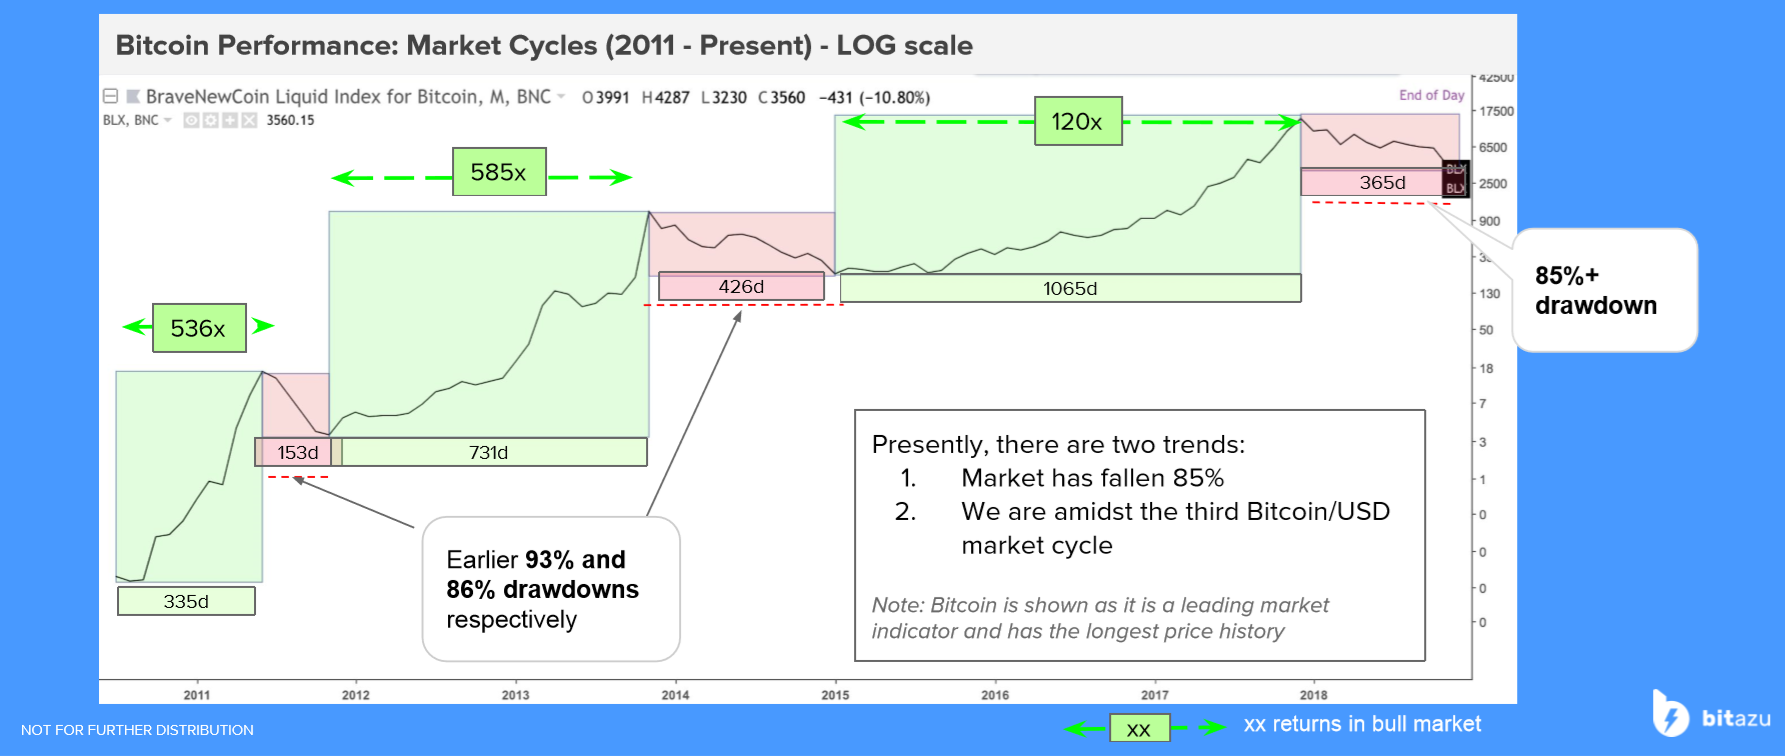 /breaking-down-bitcoins-price-trends-with-the-dow-theory-6af697ce9c2f feature image